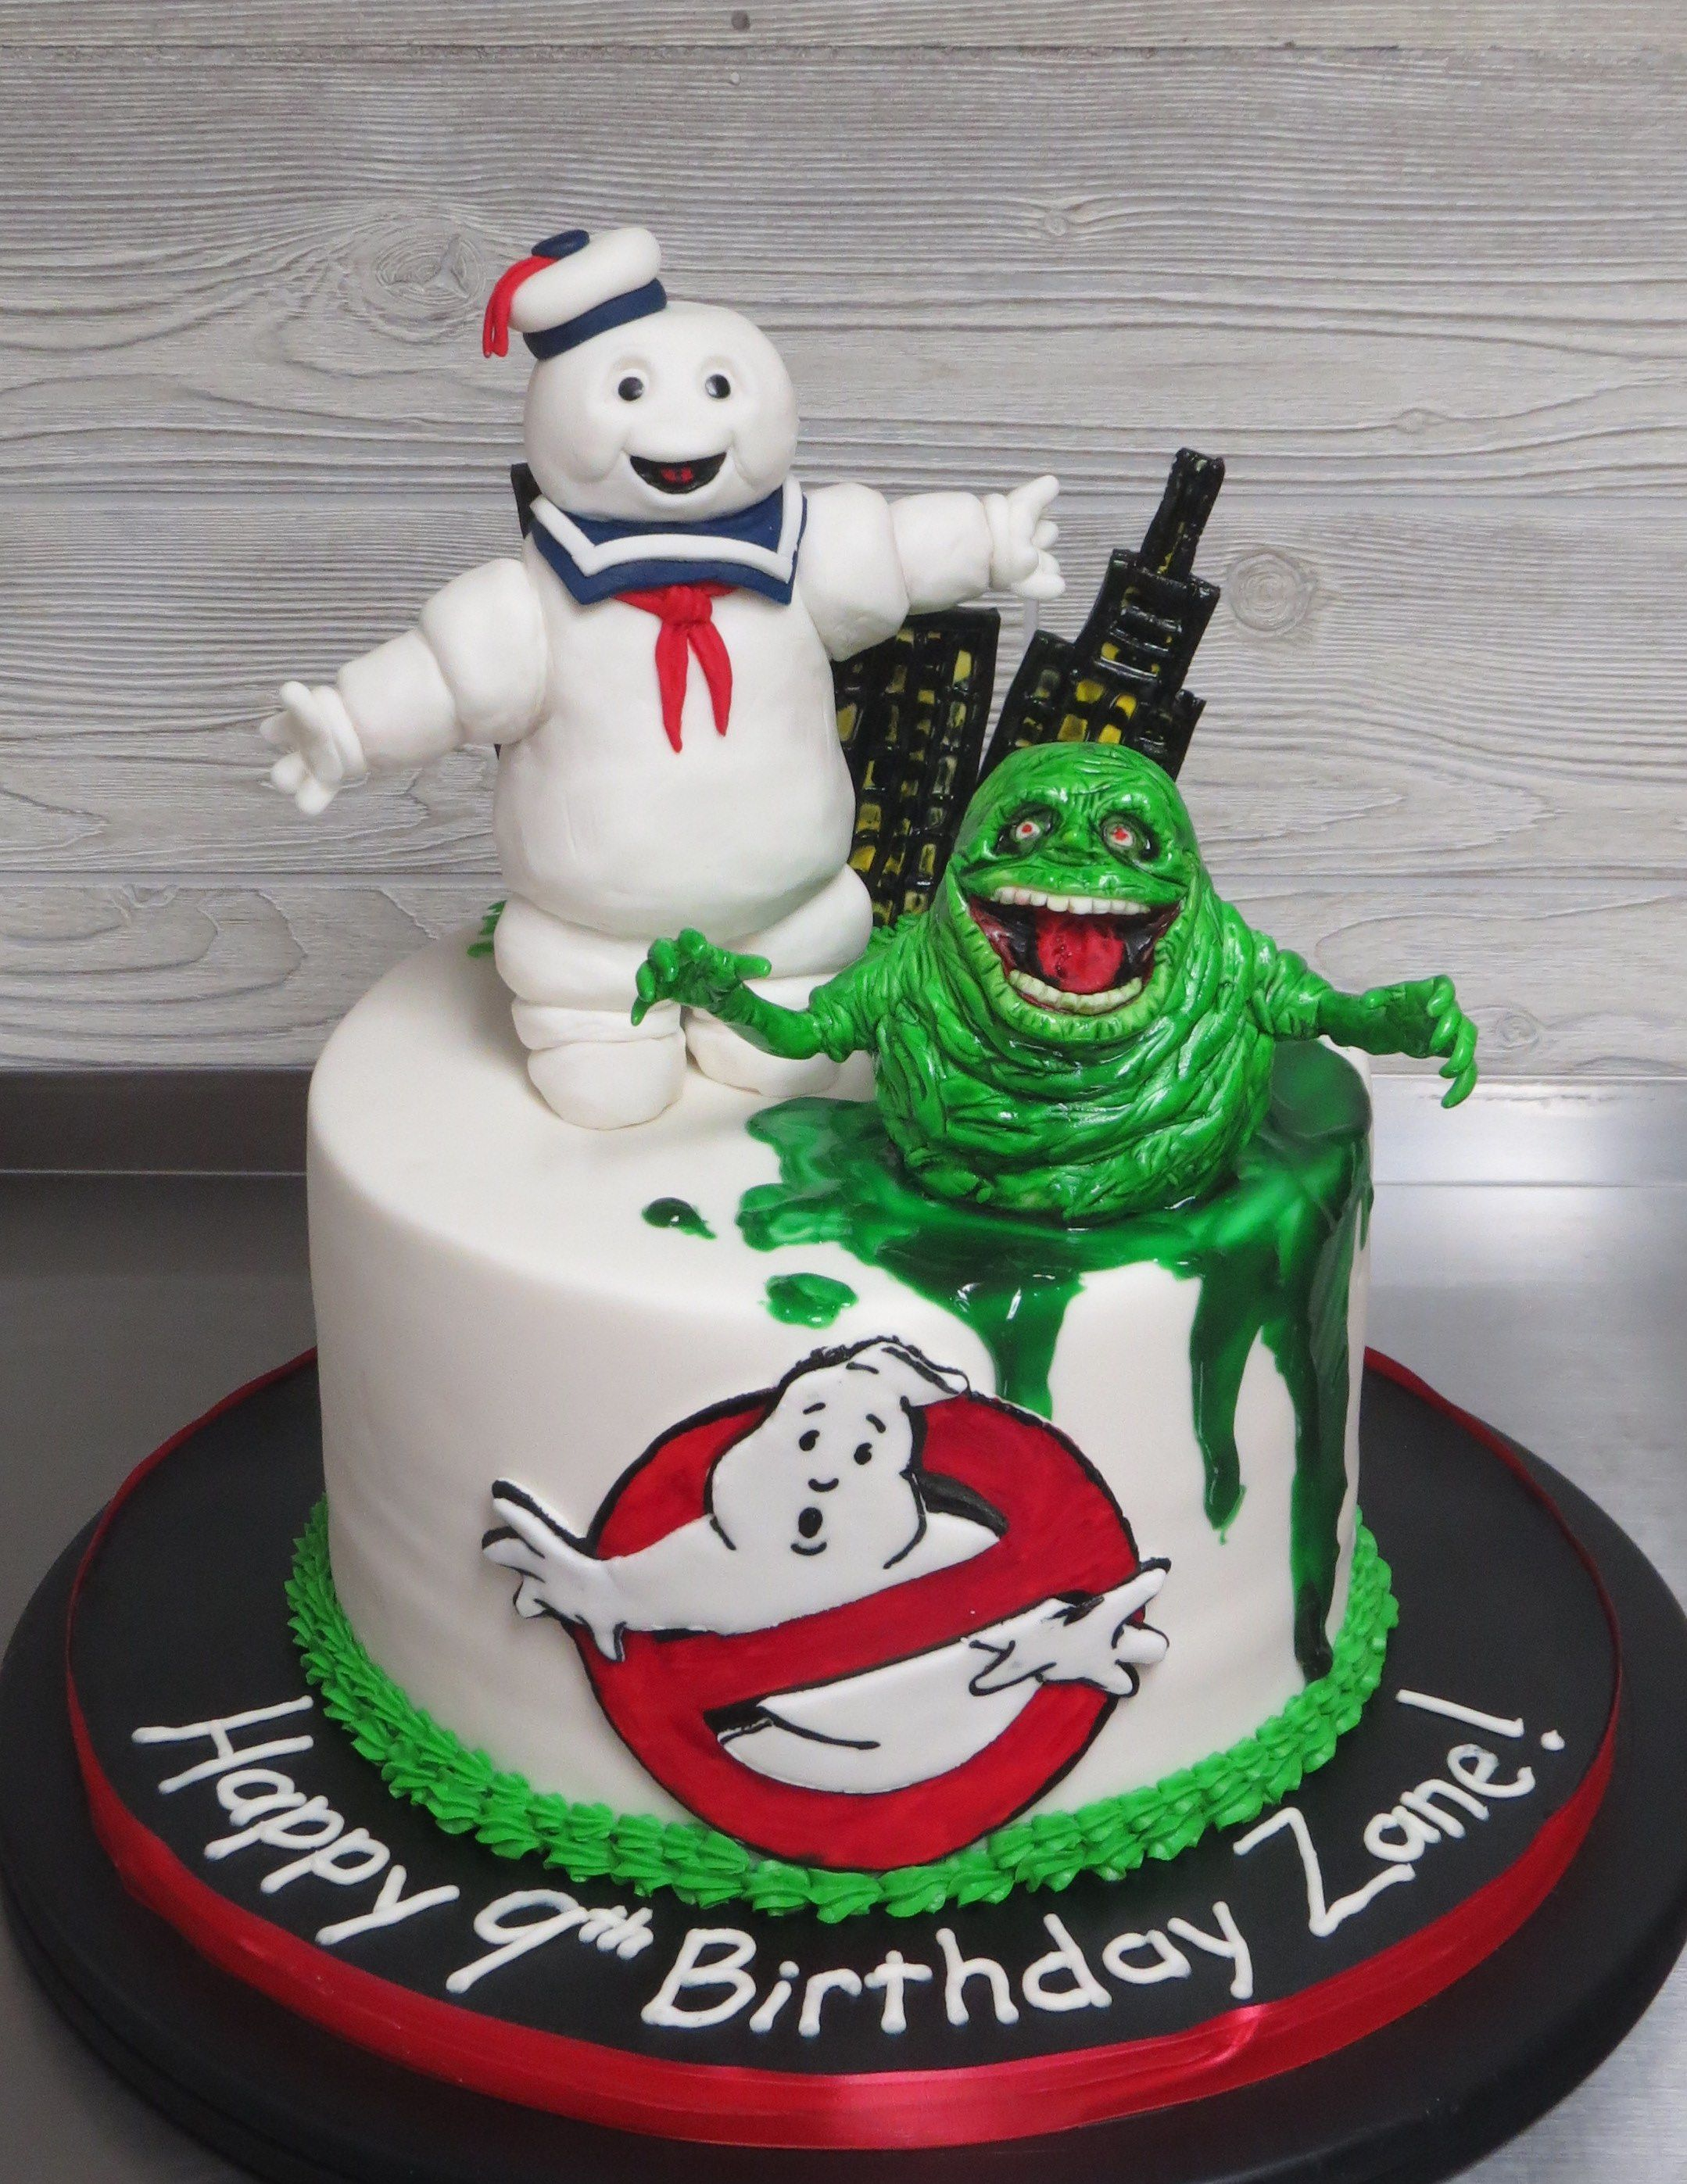 Enjoyable Ghostbusters Cake Everything On This Cake Was Handmade And Edible Funny Birthday Cards Online Alyptdamsfinfo